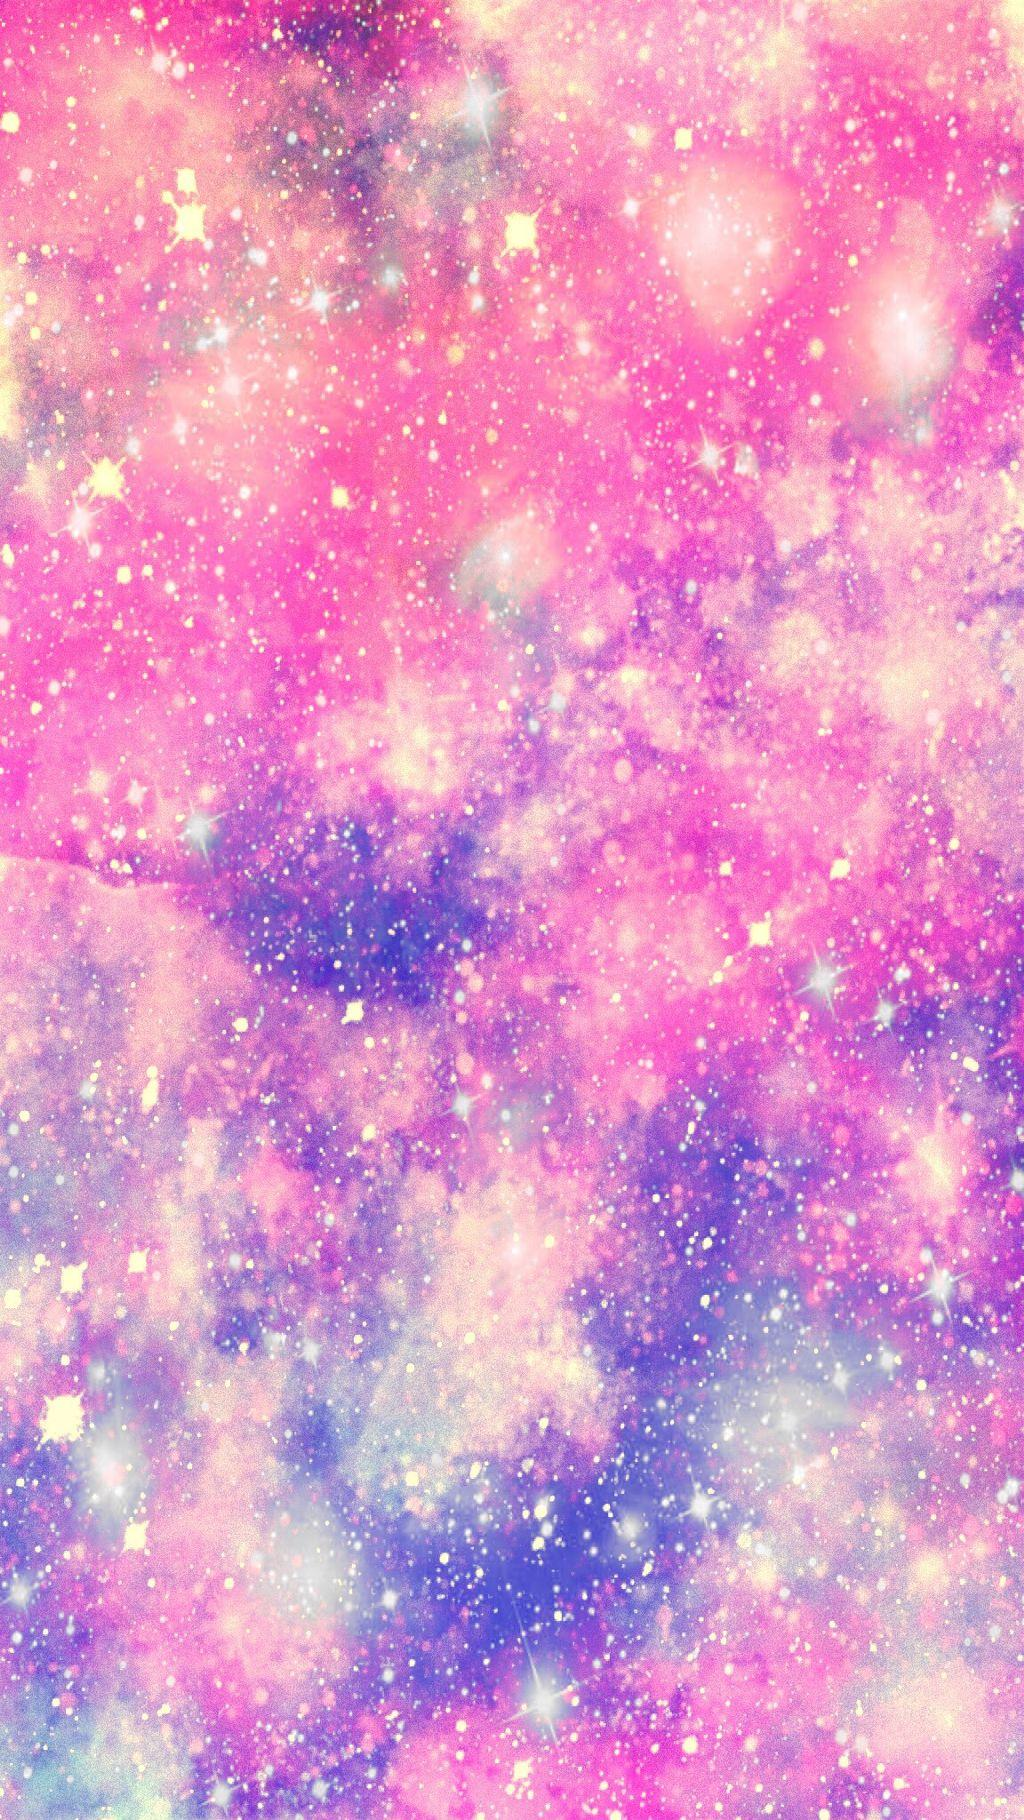 Download Pastel Star Wallpaper Hd Backgrounds Download - pastel cute background design galaxy background